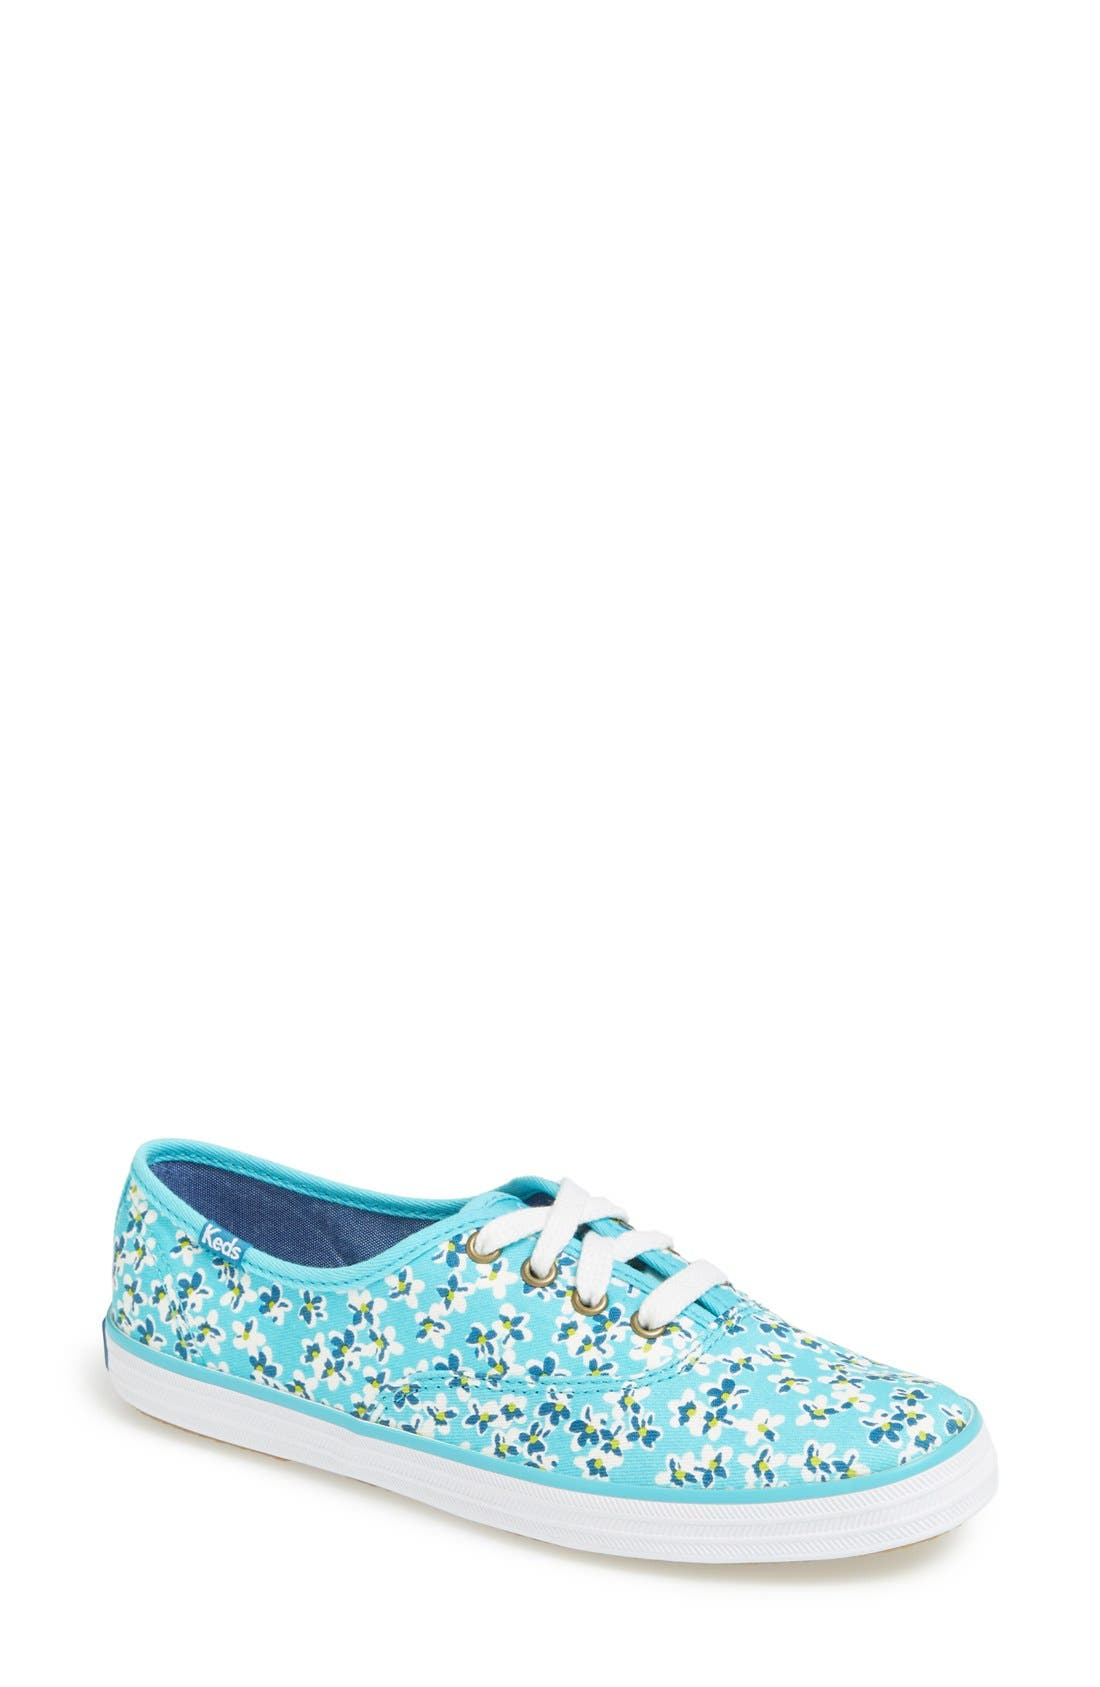 Alternate Image 1 Selected - Keds® Taylor Swift 'Champion Sunpie Floral' Sneaker (Women)